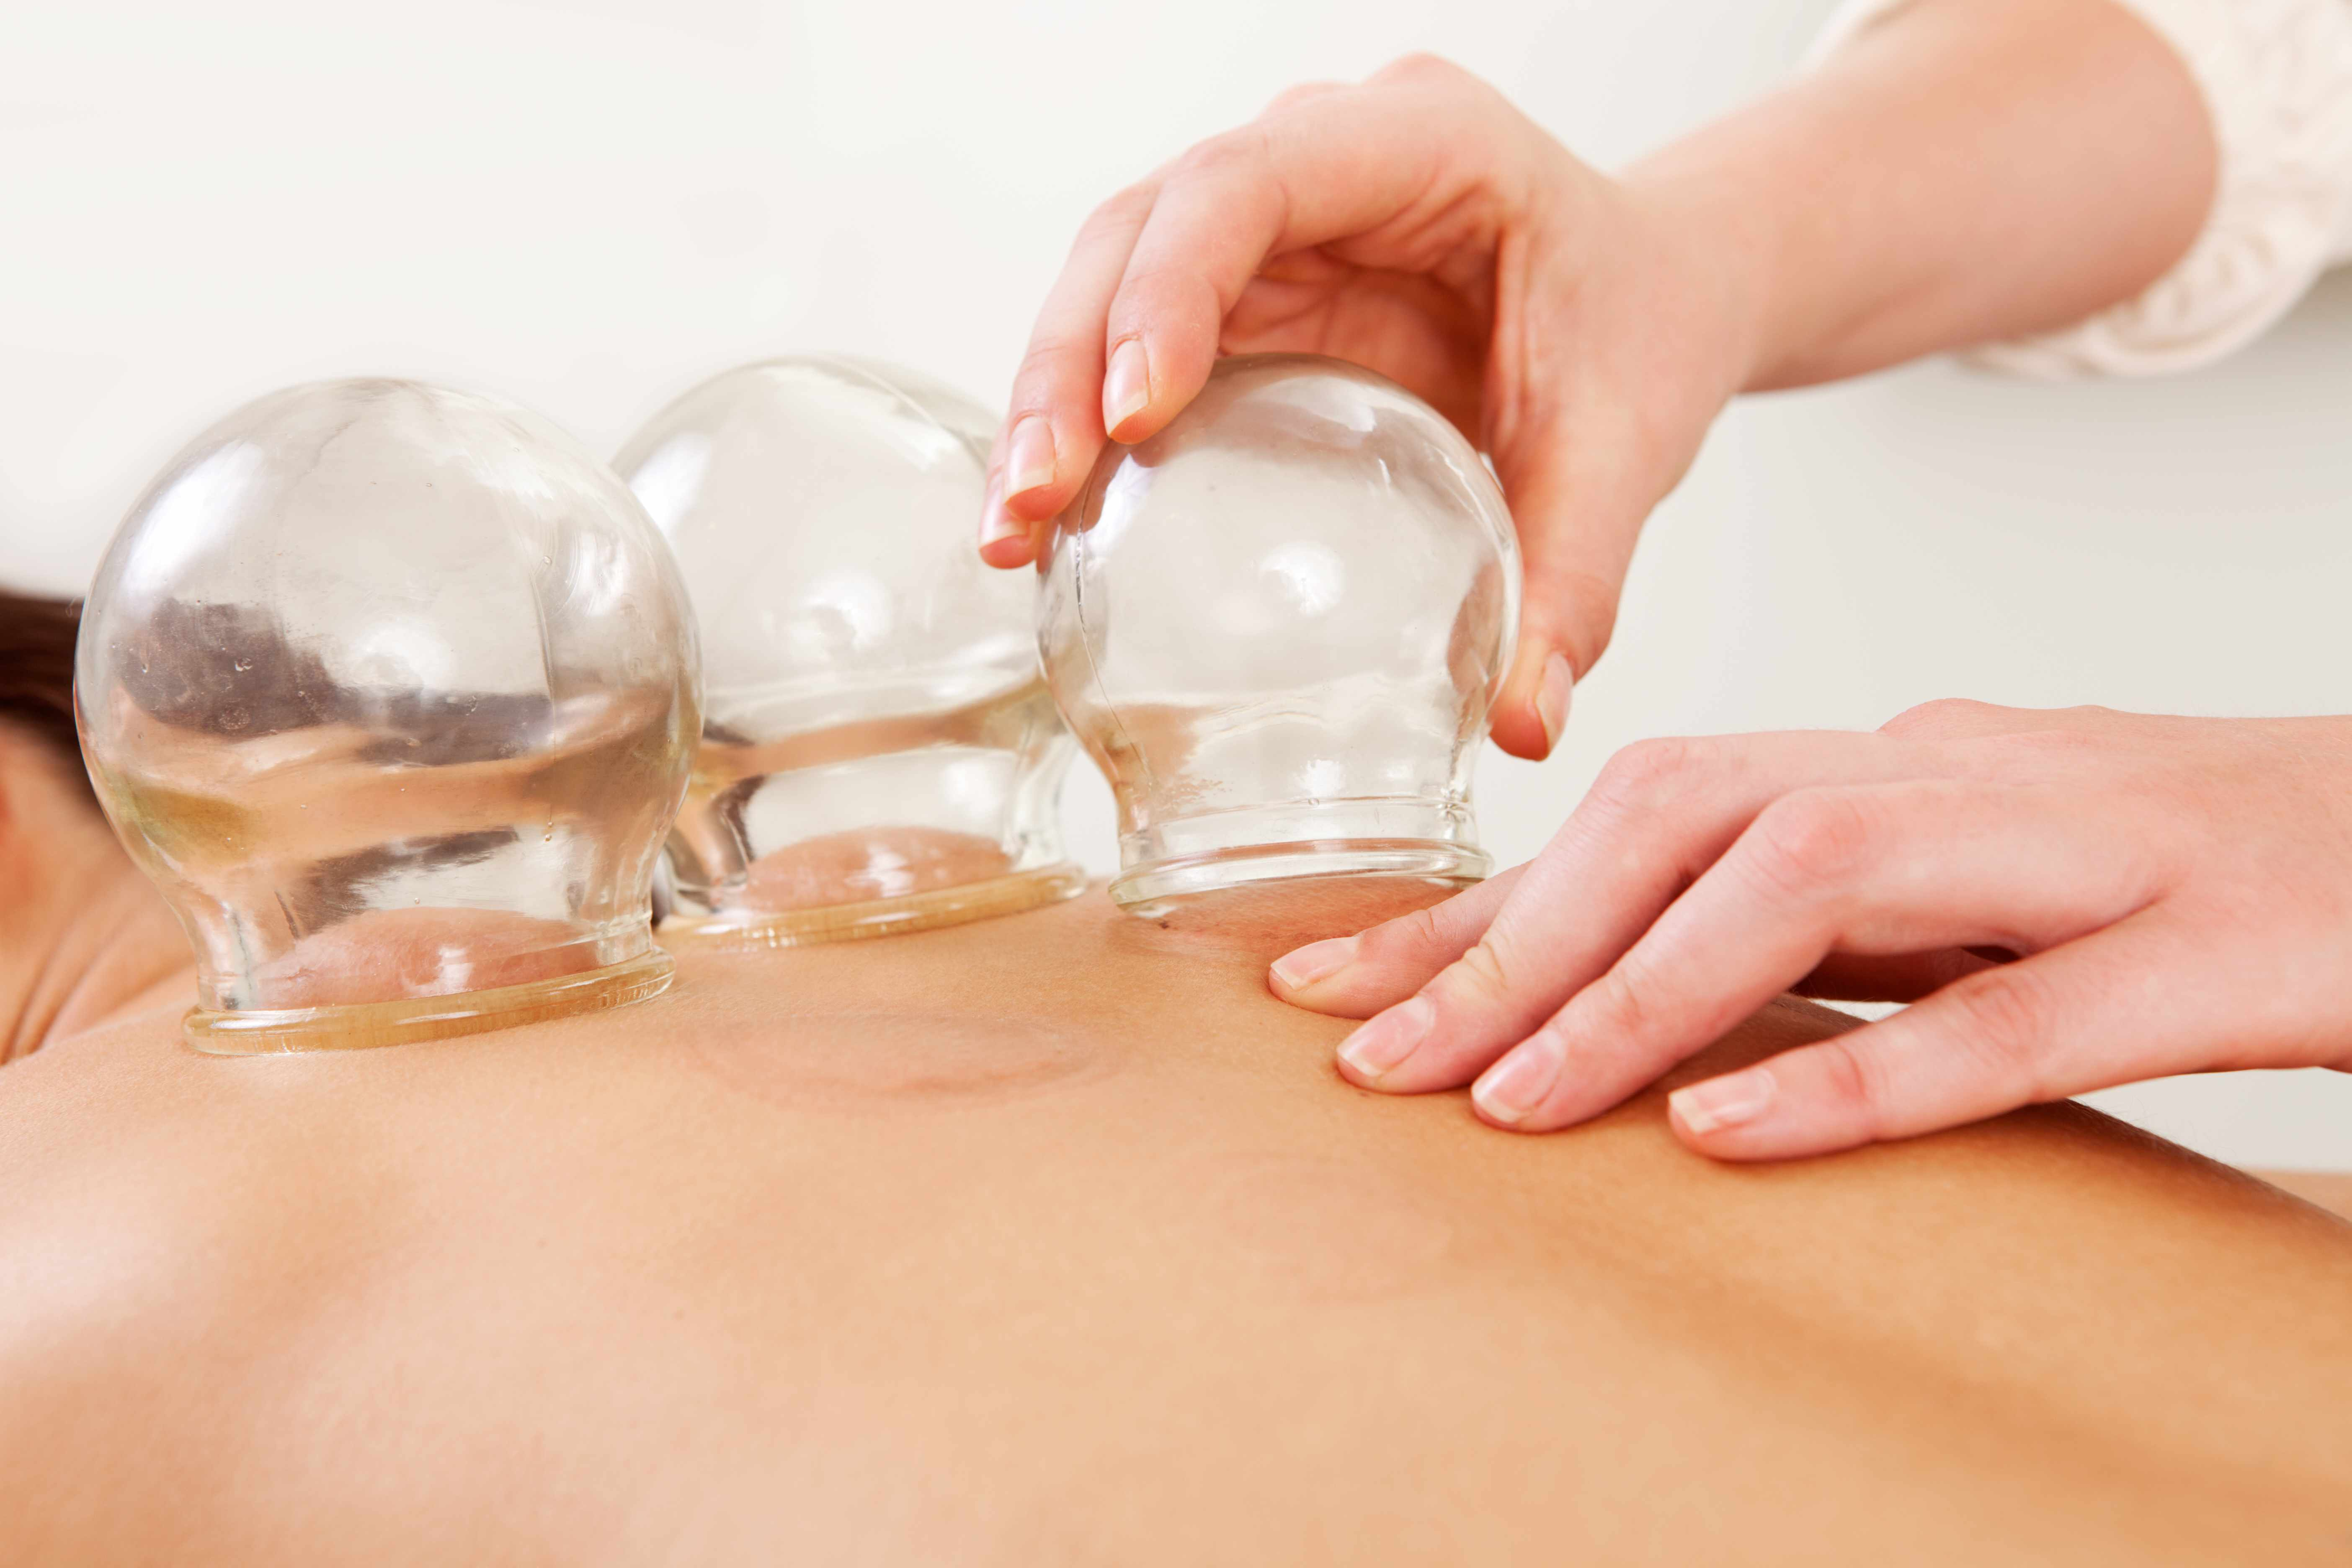 a person doing cupping therapy on someone's back